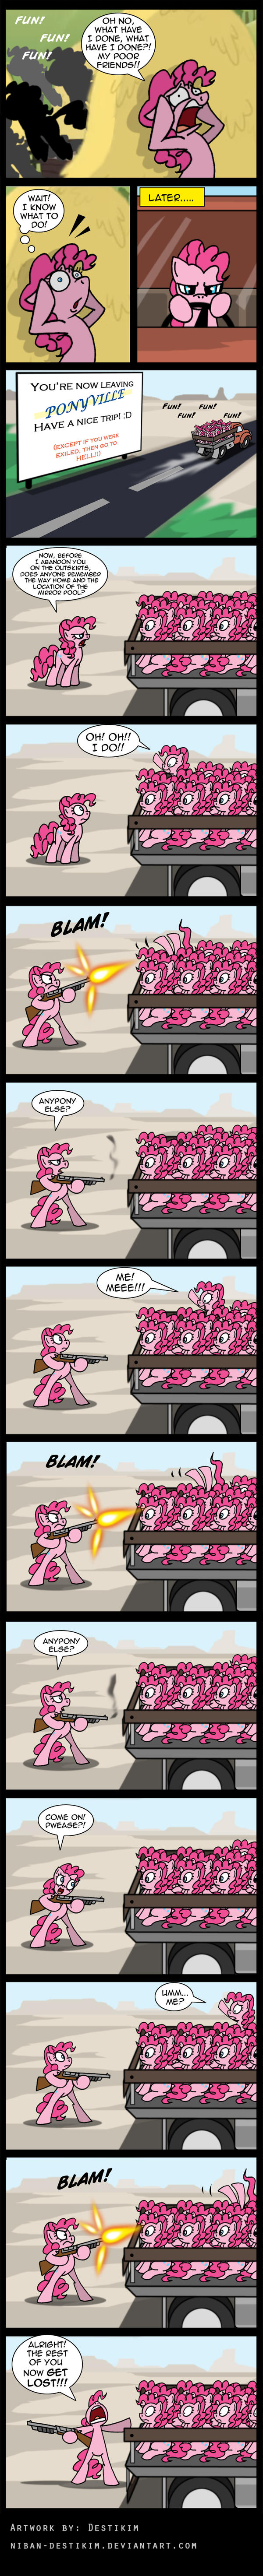 Send in the Clones Clones Clones Clones by Niban-Destikim